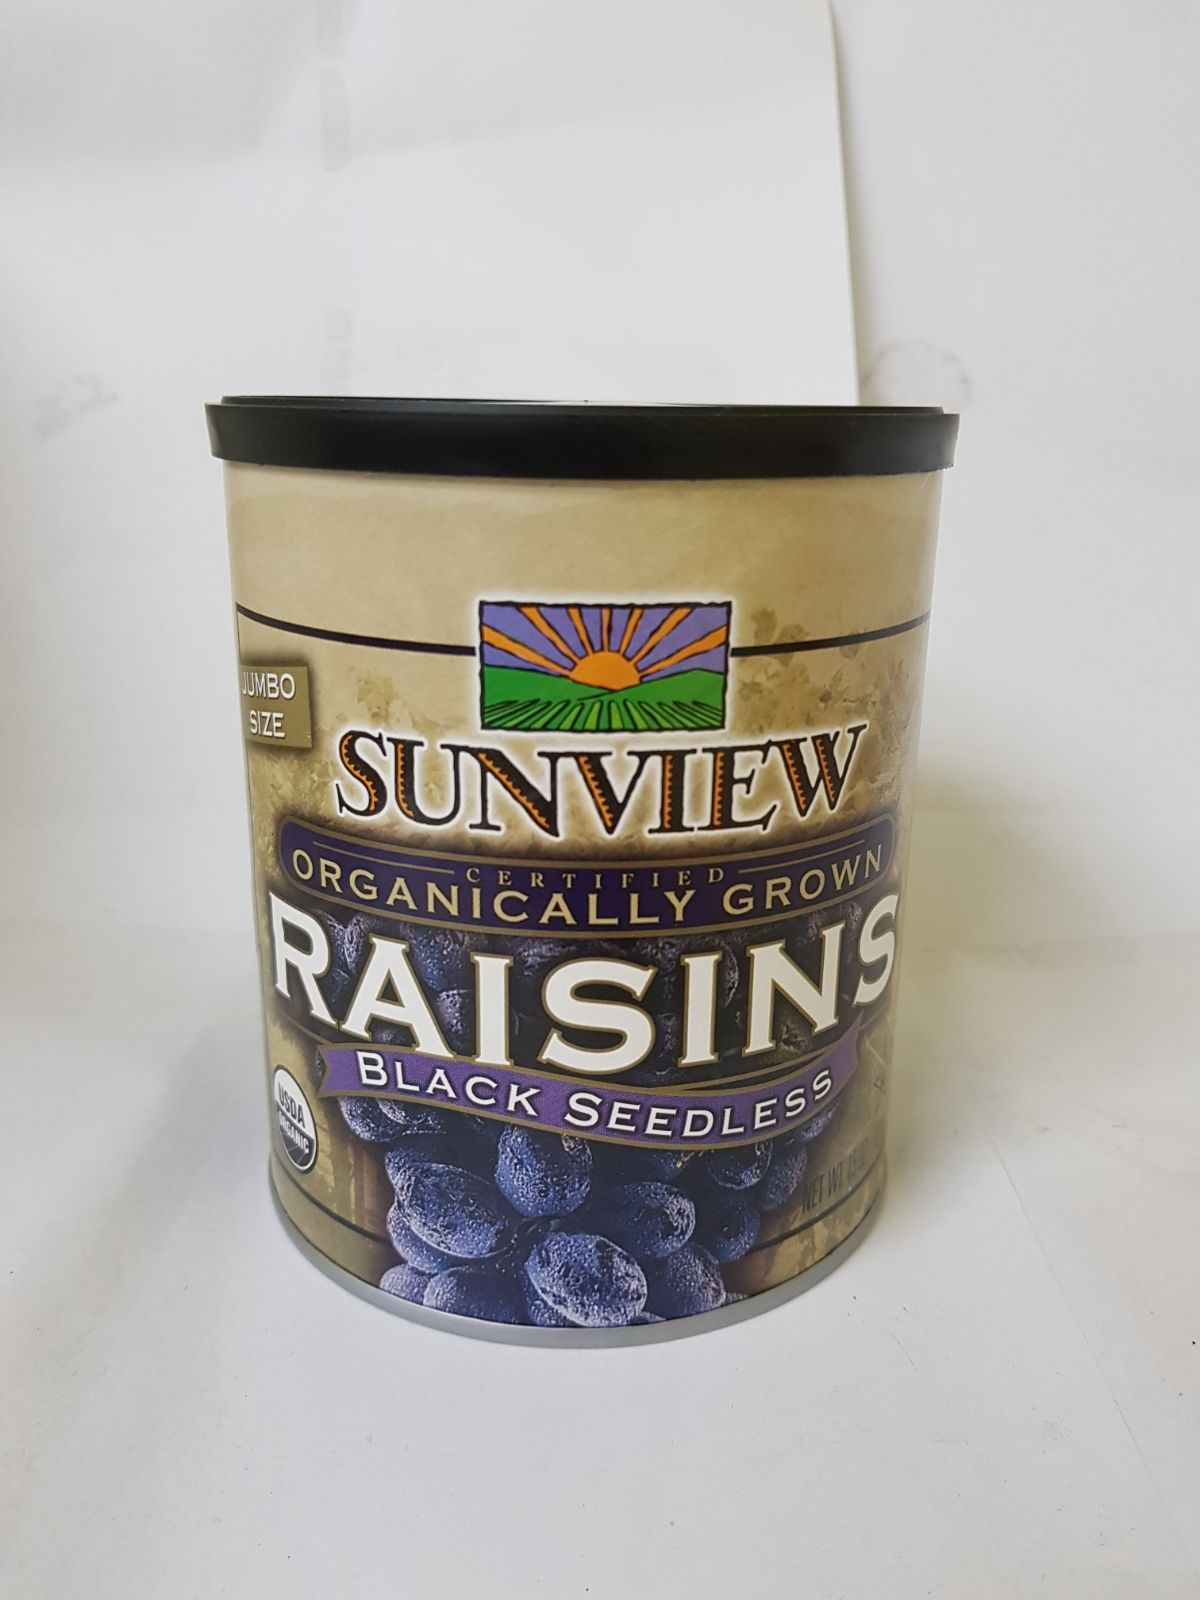 Organic Black Seedless Raisins Jumbo Size